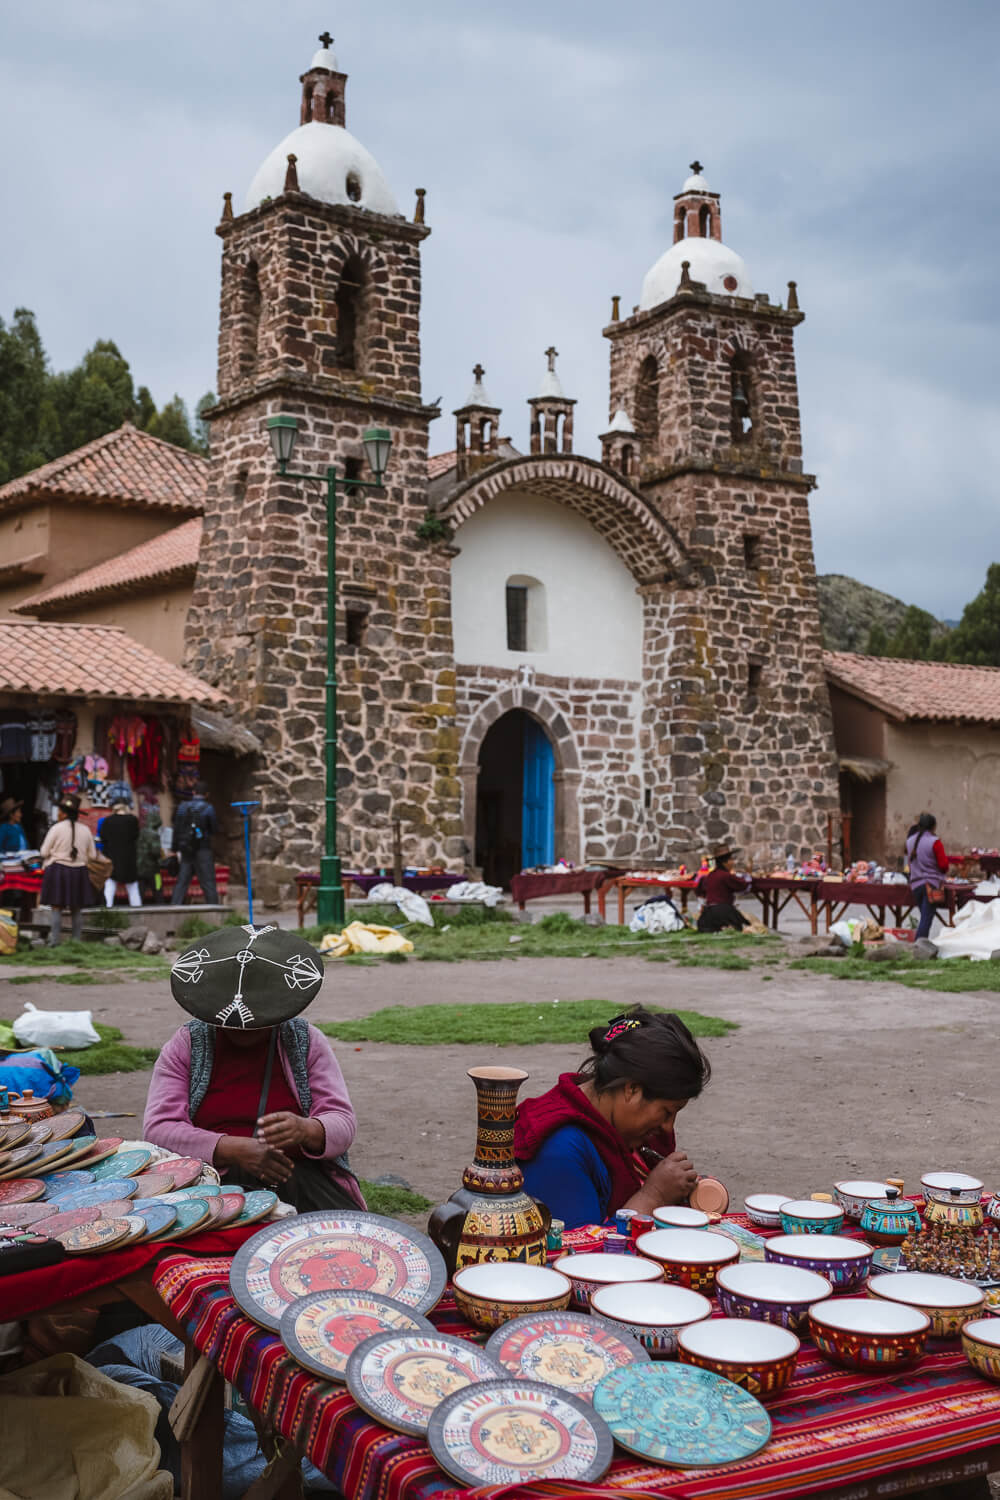 "The market in Raqch'i. Travel photography and guide by © Natasha Lequepeys for ""And Then I Met Yoko"". #peru #sacredvalley #cusco #laketiticaca #belmondandeanexplorer #perurail #perutrain #luxurytravel #sleepertrain #photoblog #travelblog #travelphotography #fujifilm #andes #travel #travelperu #cuscotolaketiticaca #spiritofthelake #belmond #puno #southamerica"